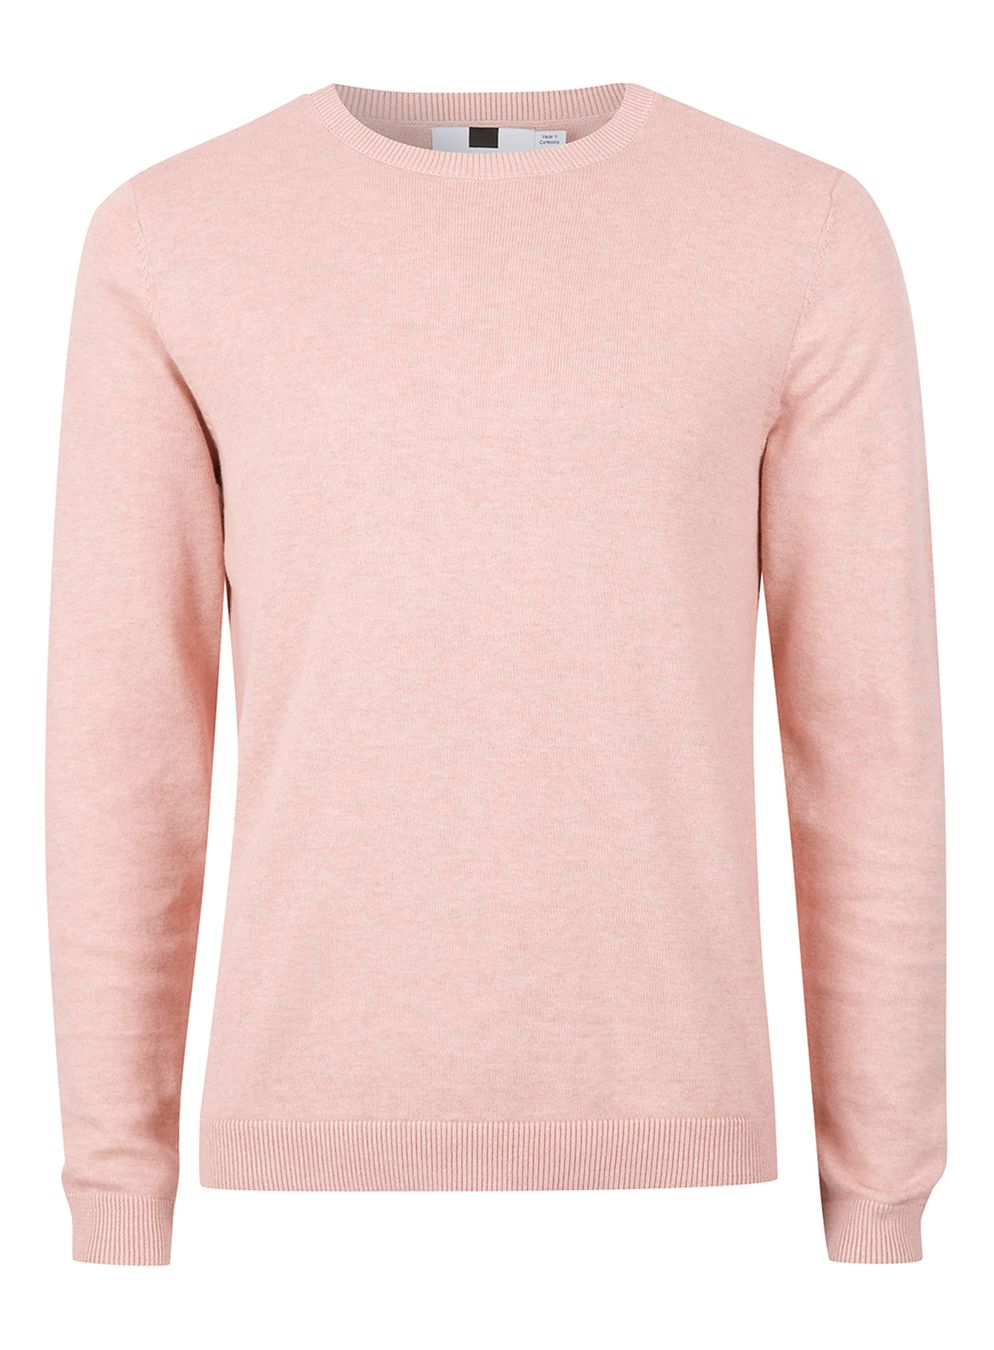 sam-c-perry-weekend-looks-that-transition-from-weekend-to-weekday-pink-marl-sweater.jpg